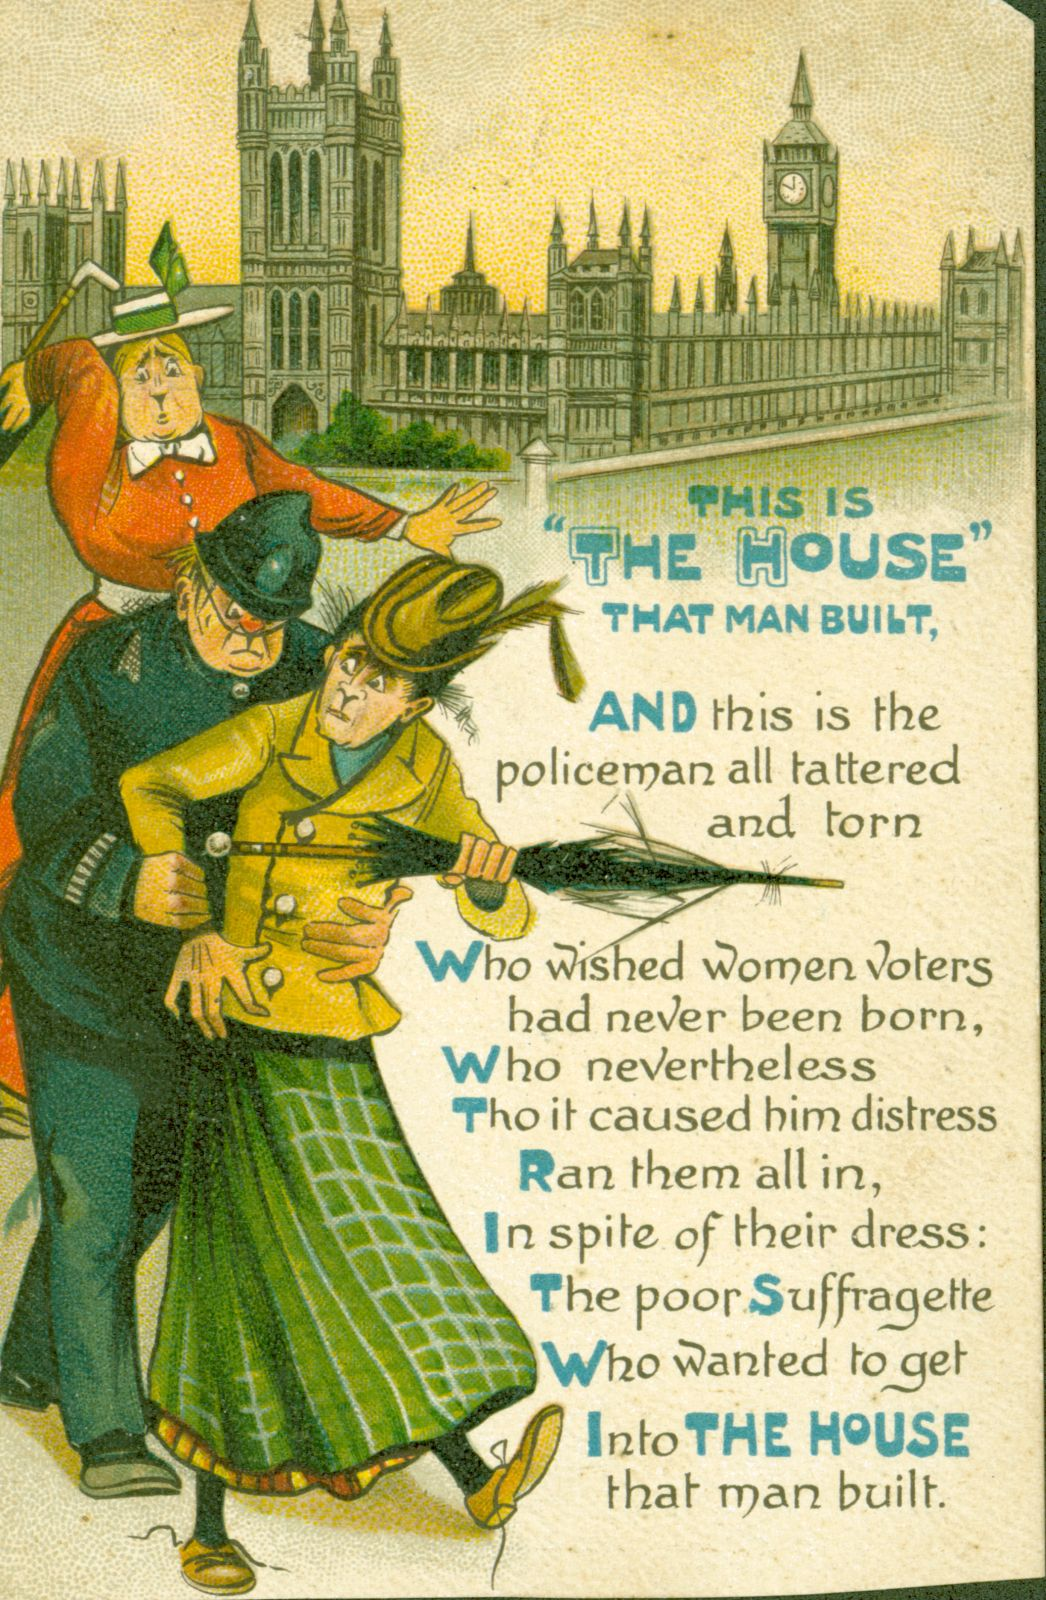 A harrassed policeman shepherds two comically plain women to the accompaniment of an anti-Suffragette poem.